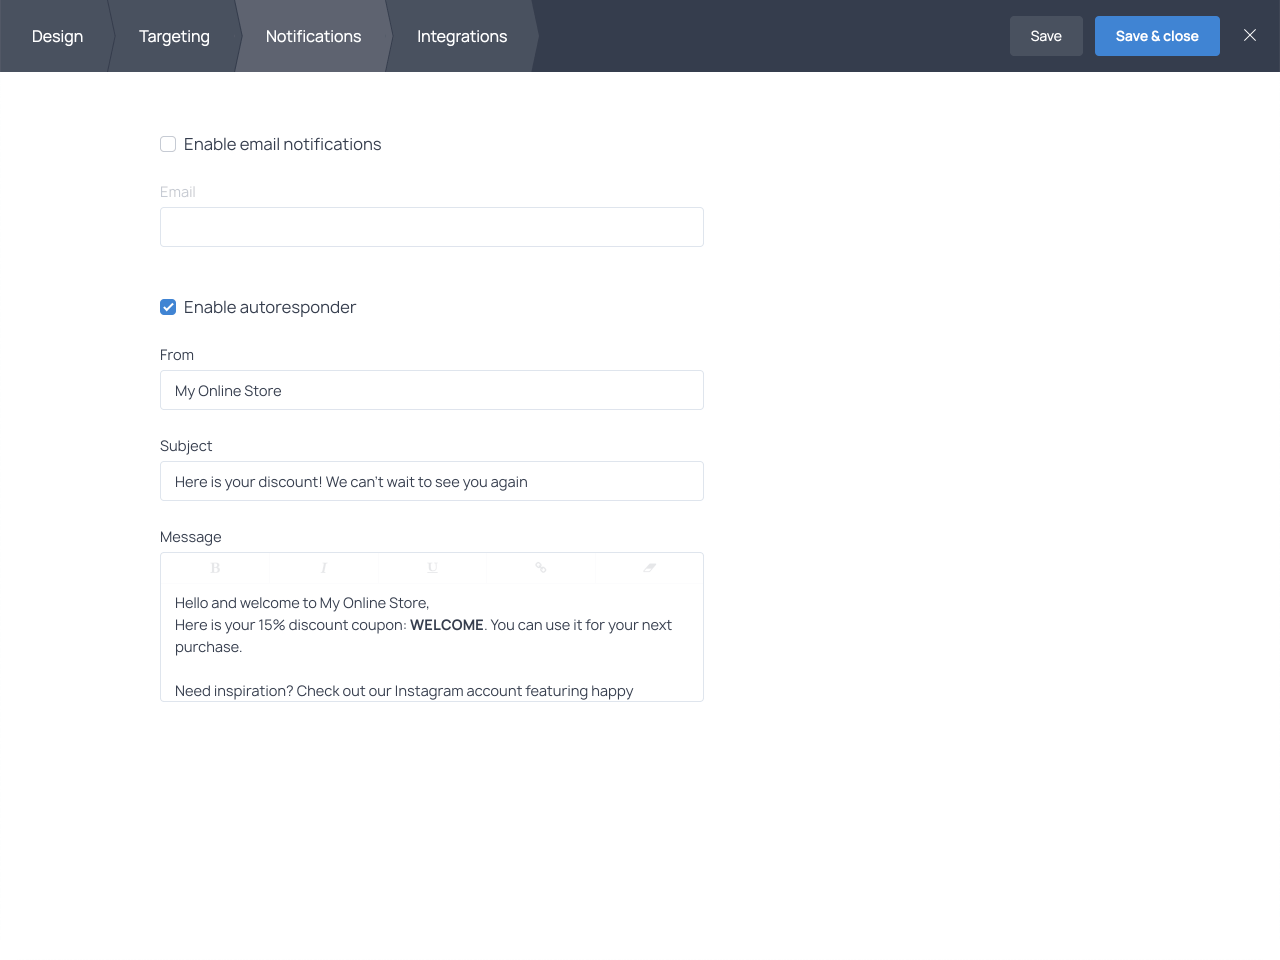 Use the autoresponder feature to send automated emails to new subscribers